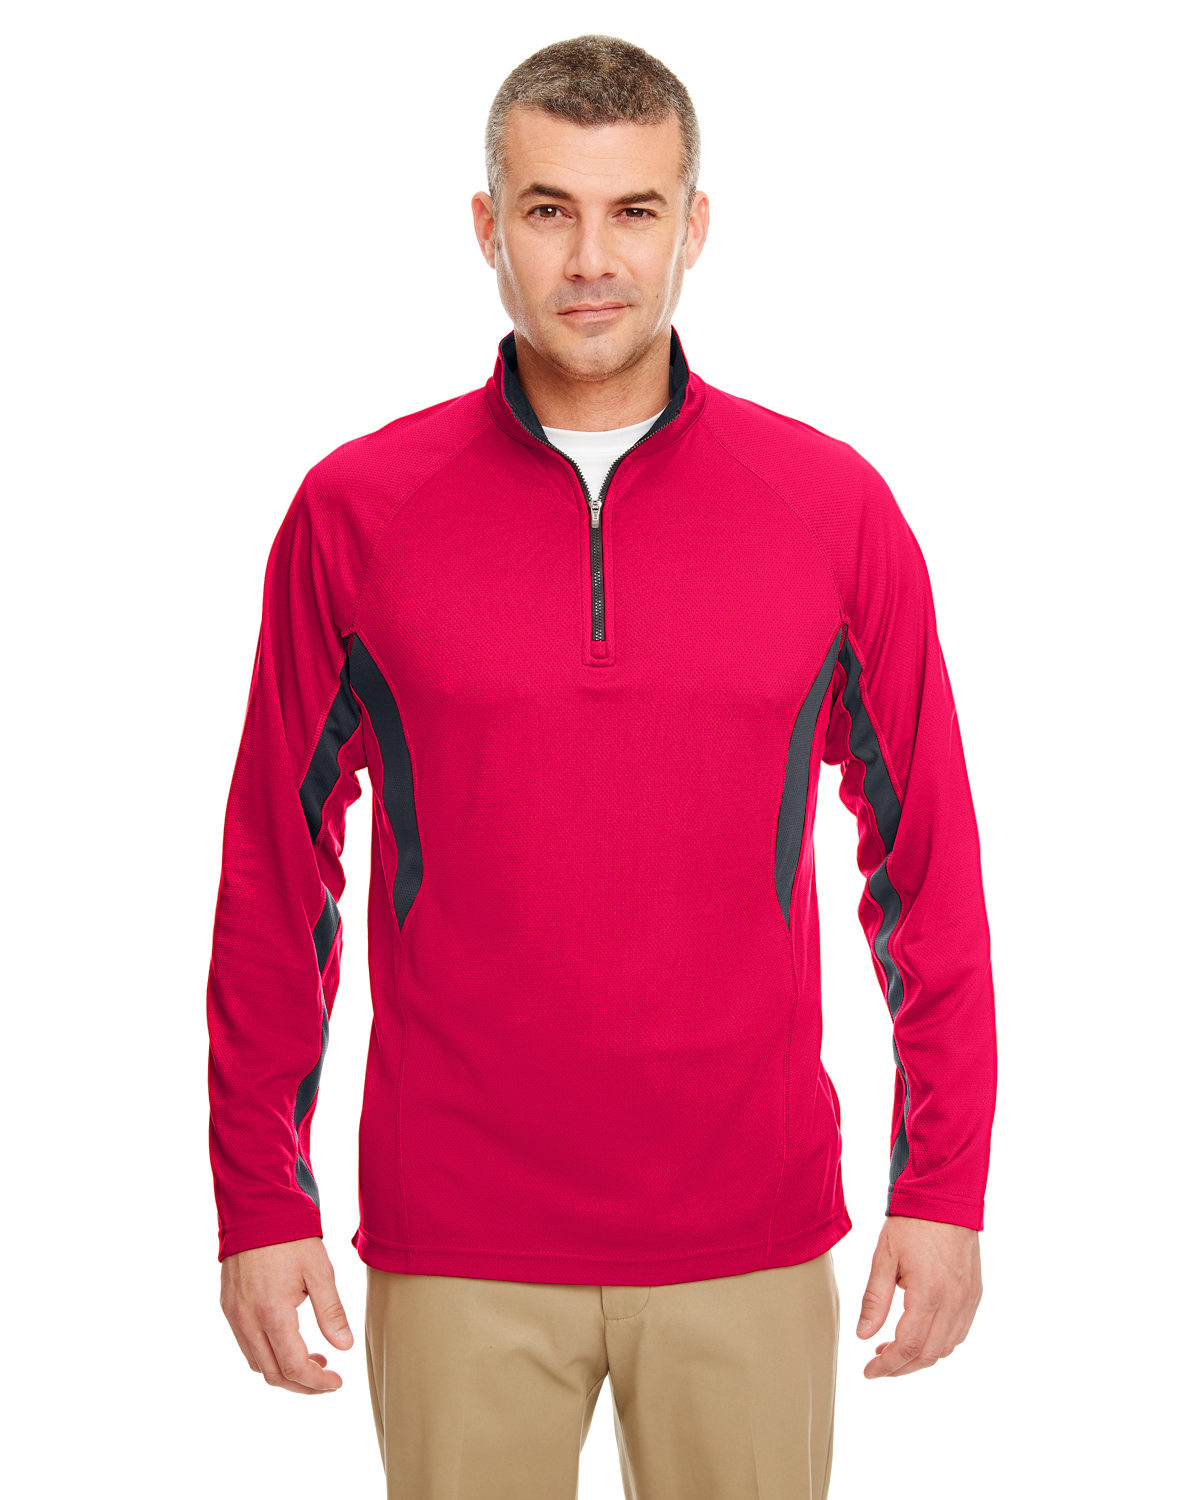 Adult Cool & Dry Colorblock Dimple Mesh Quarter-Zip Pullover